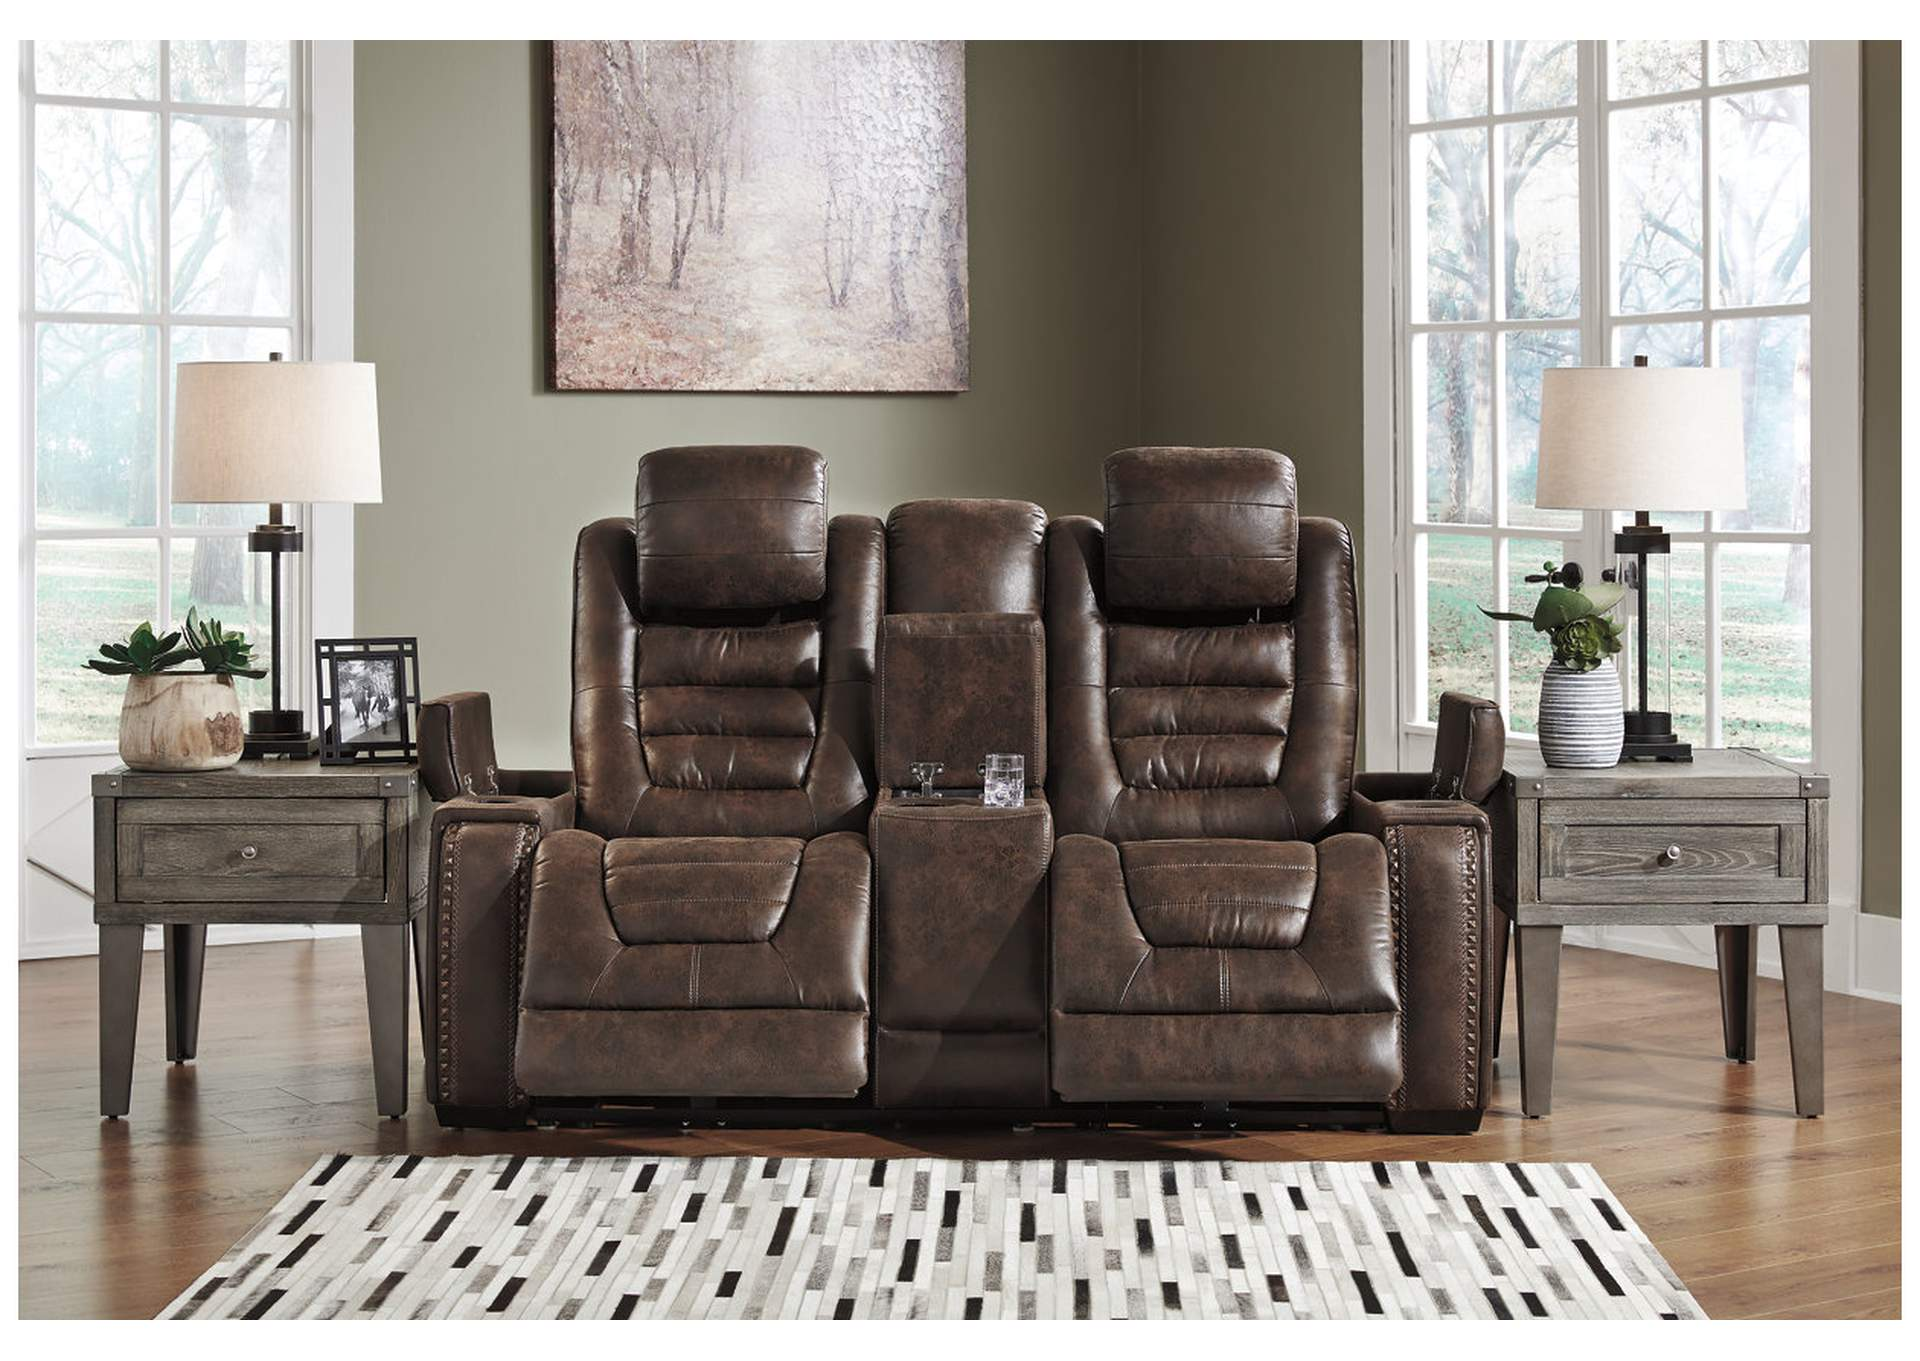 Game Zone Power Reclining Loveseat w/Adjustable Headrest & Console,Signature Design By Ashley